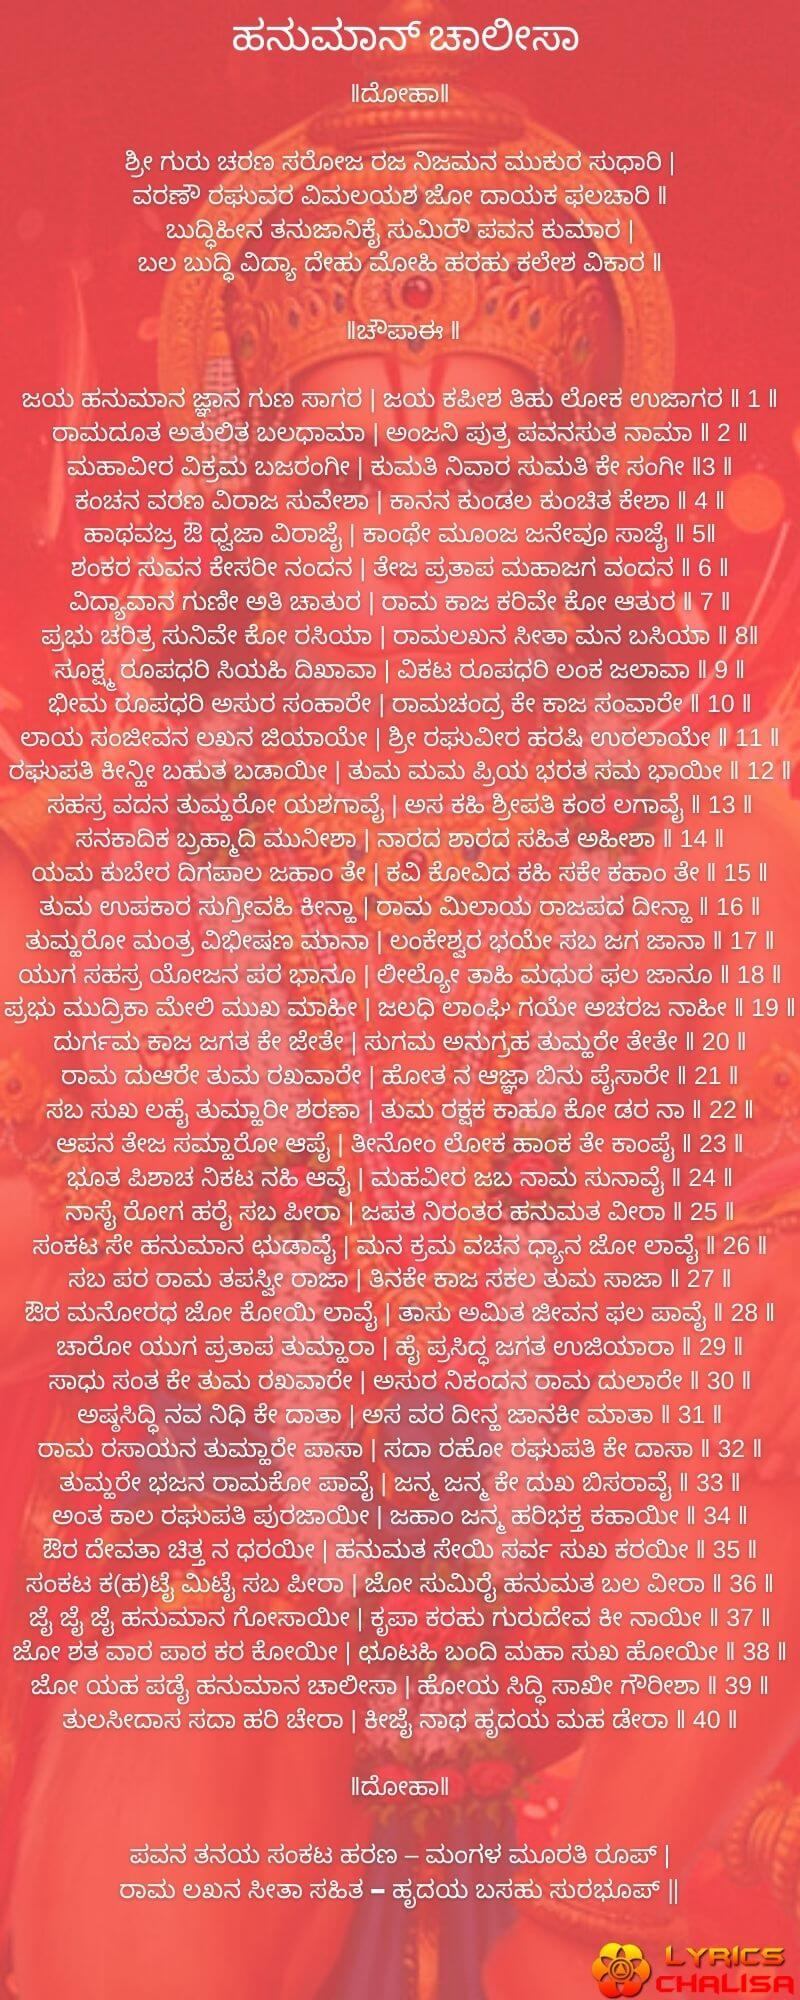 Shree Hanuman Chalisa Lyrics In Kannada, With PDF